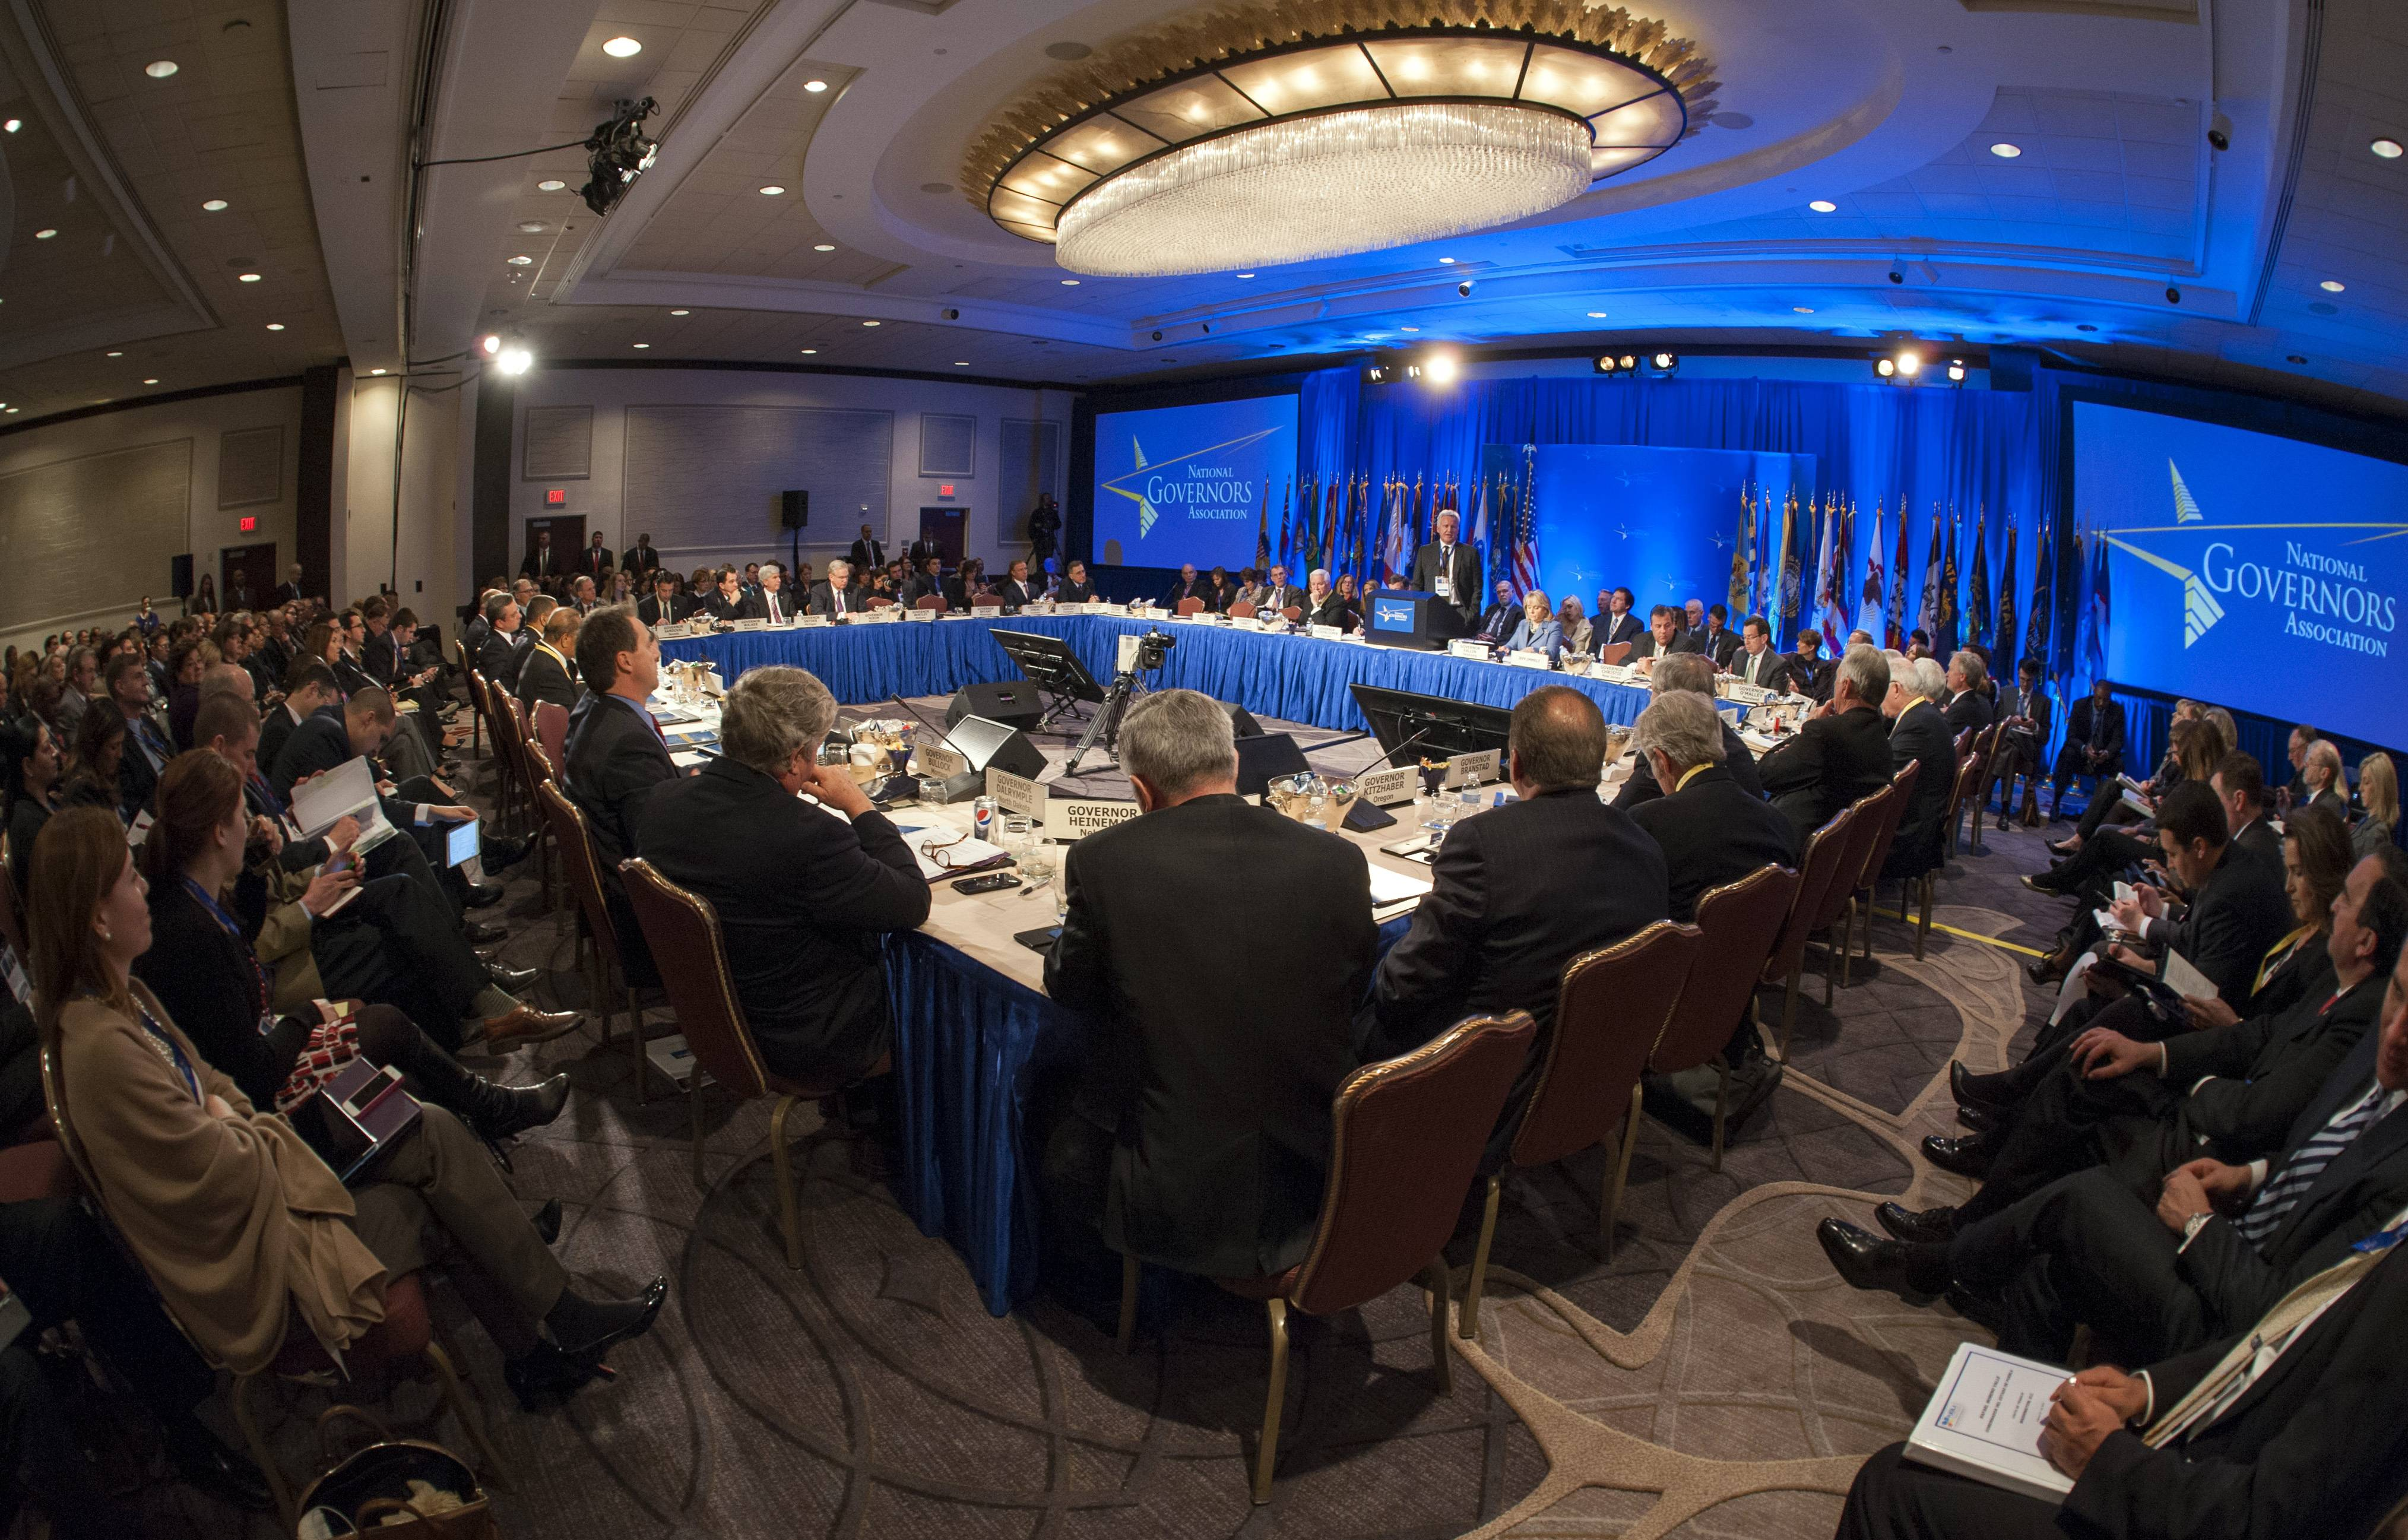 Governors from across the U.S. meet Saturday during the National Governor's Association Winter Meeting in Washington.